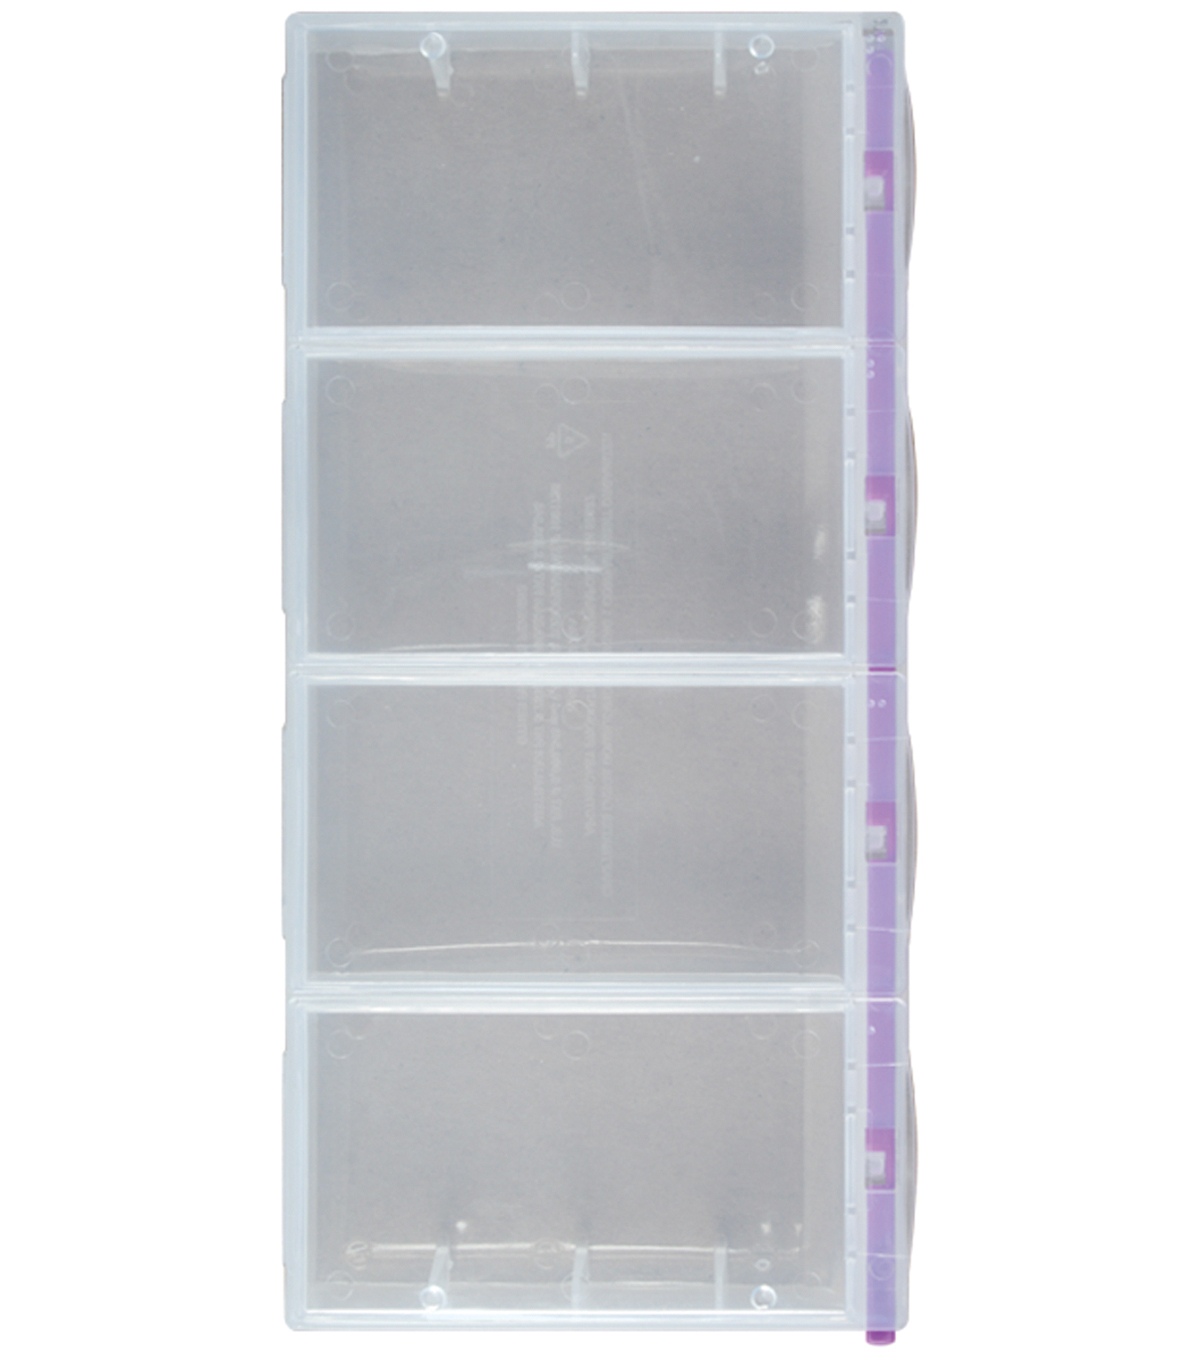 Craft Mates Lockables 2XL Organizer 4 Compartments-9\u0022X4.25\u0022X1.25\u0022